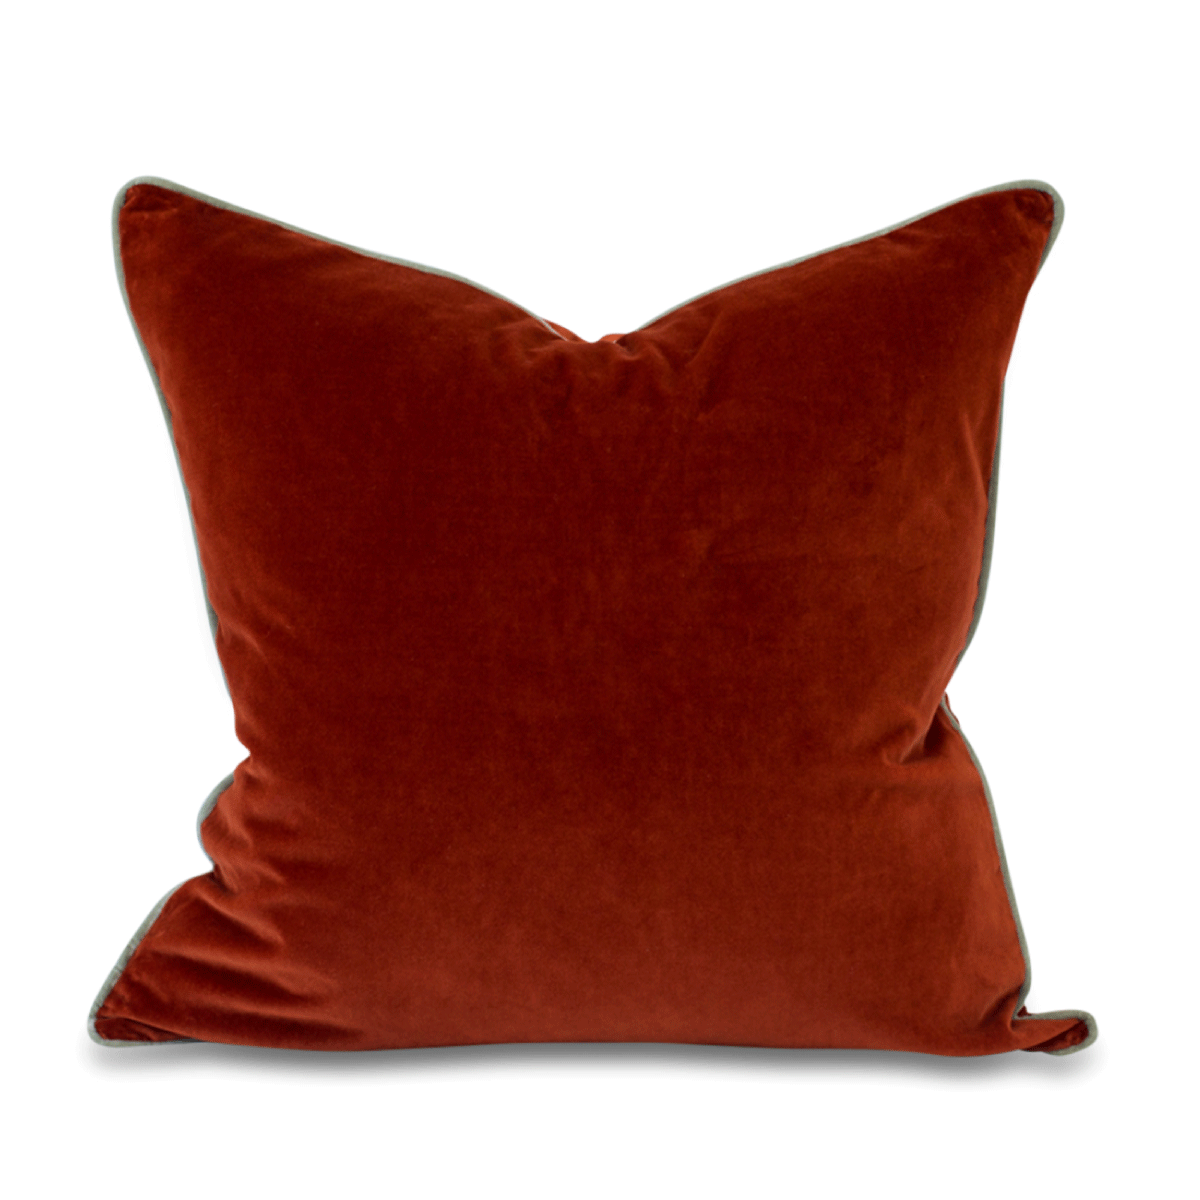 Furbish Studio - Chloe Velvet Pillow in Terra Cotta with Mint Green Piping